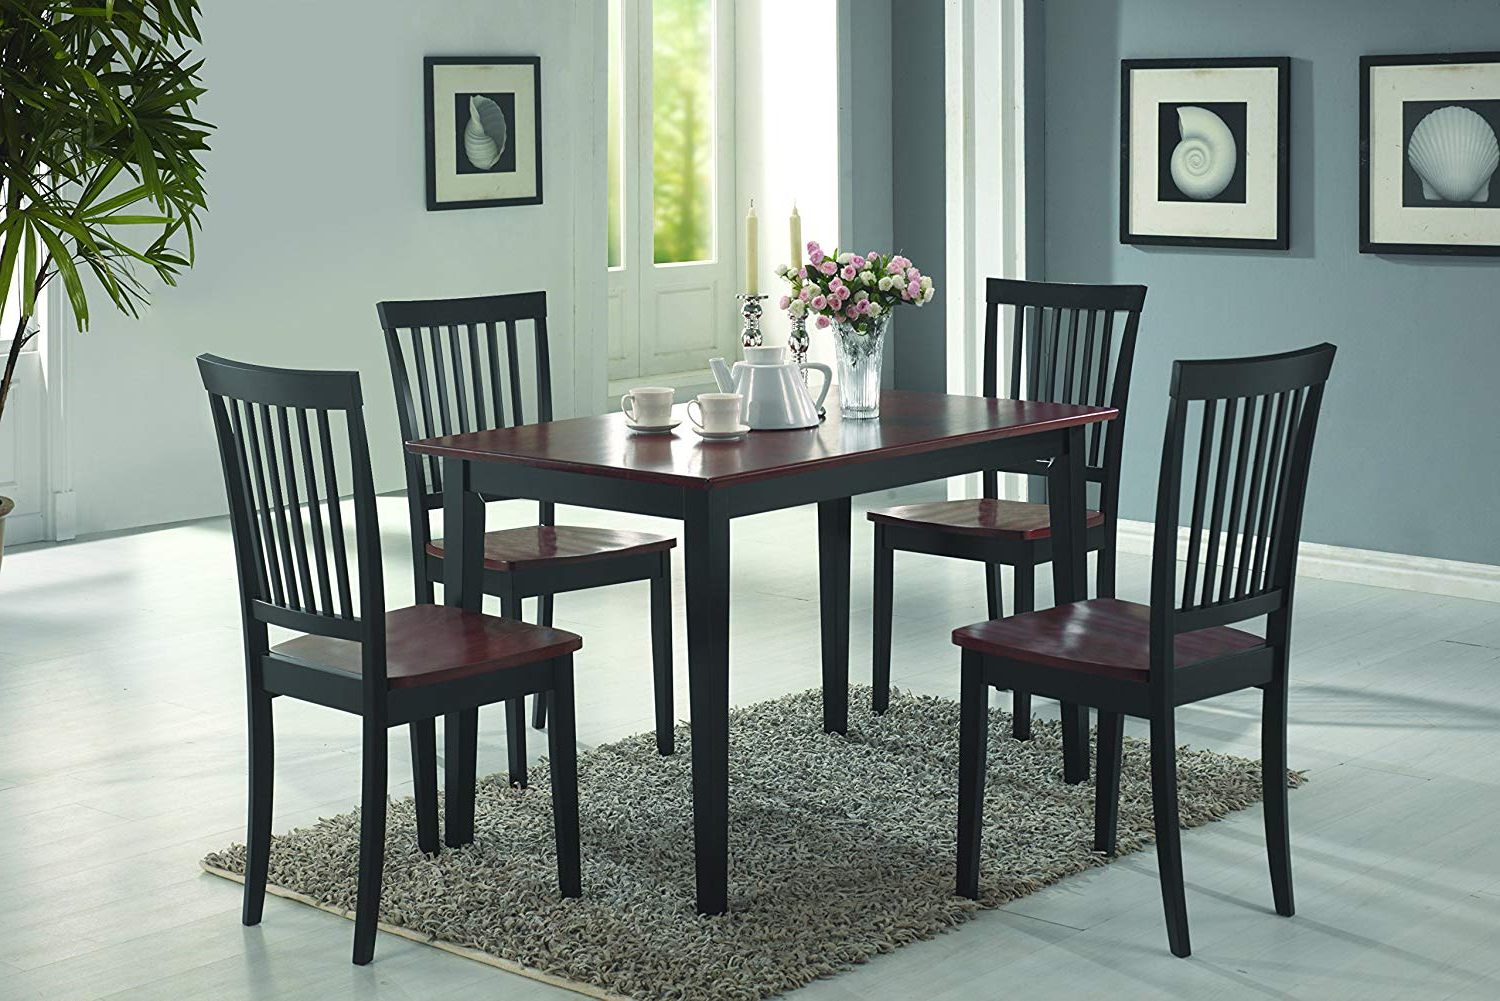 Most Recent Amazon – Coaster 5 Piece Dining Set, Table Top With 4 Chairs For Kieffer 5 Piece Dining Sets (View 18 of 25)